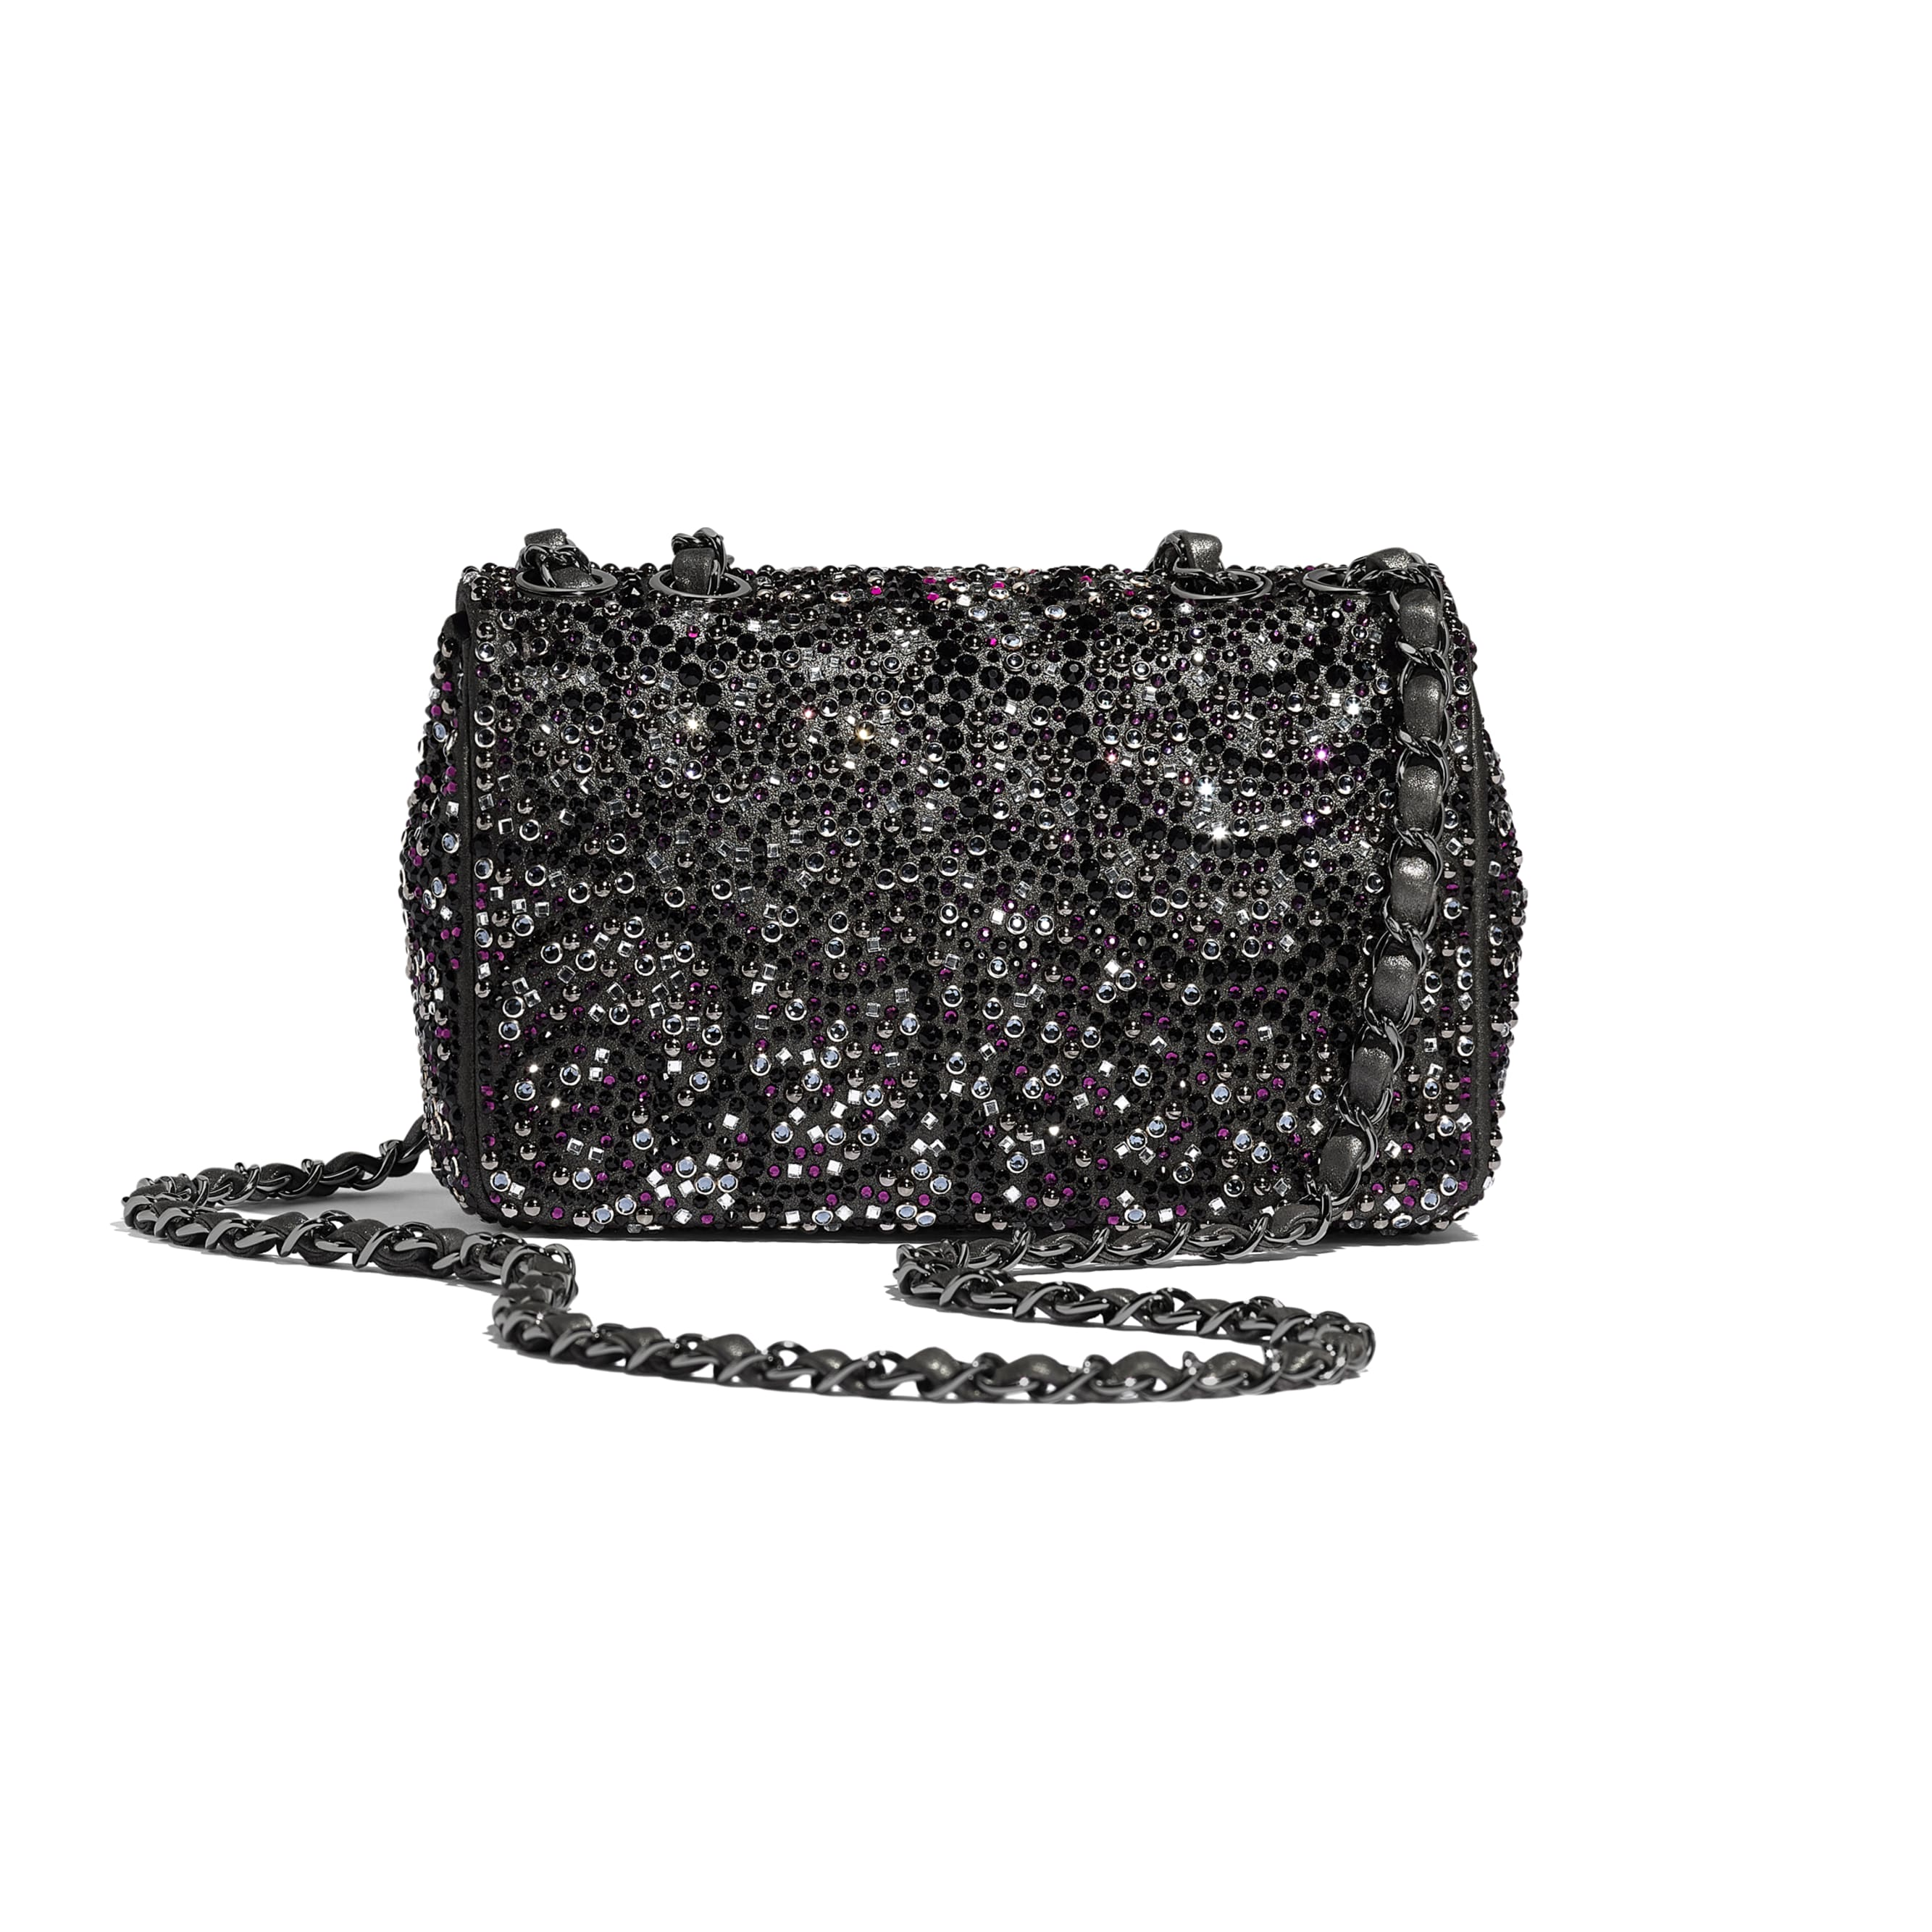 Flap Bag - Black - Strass, Goatskin & Ruthenium-Finish Metal - Alternative view - see standard sized version